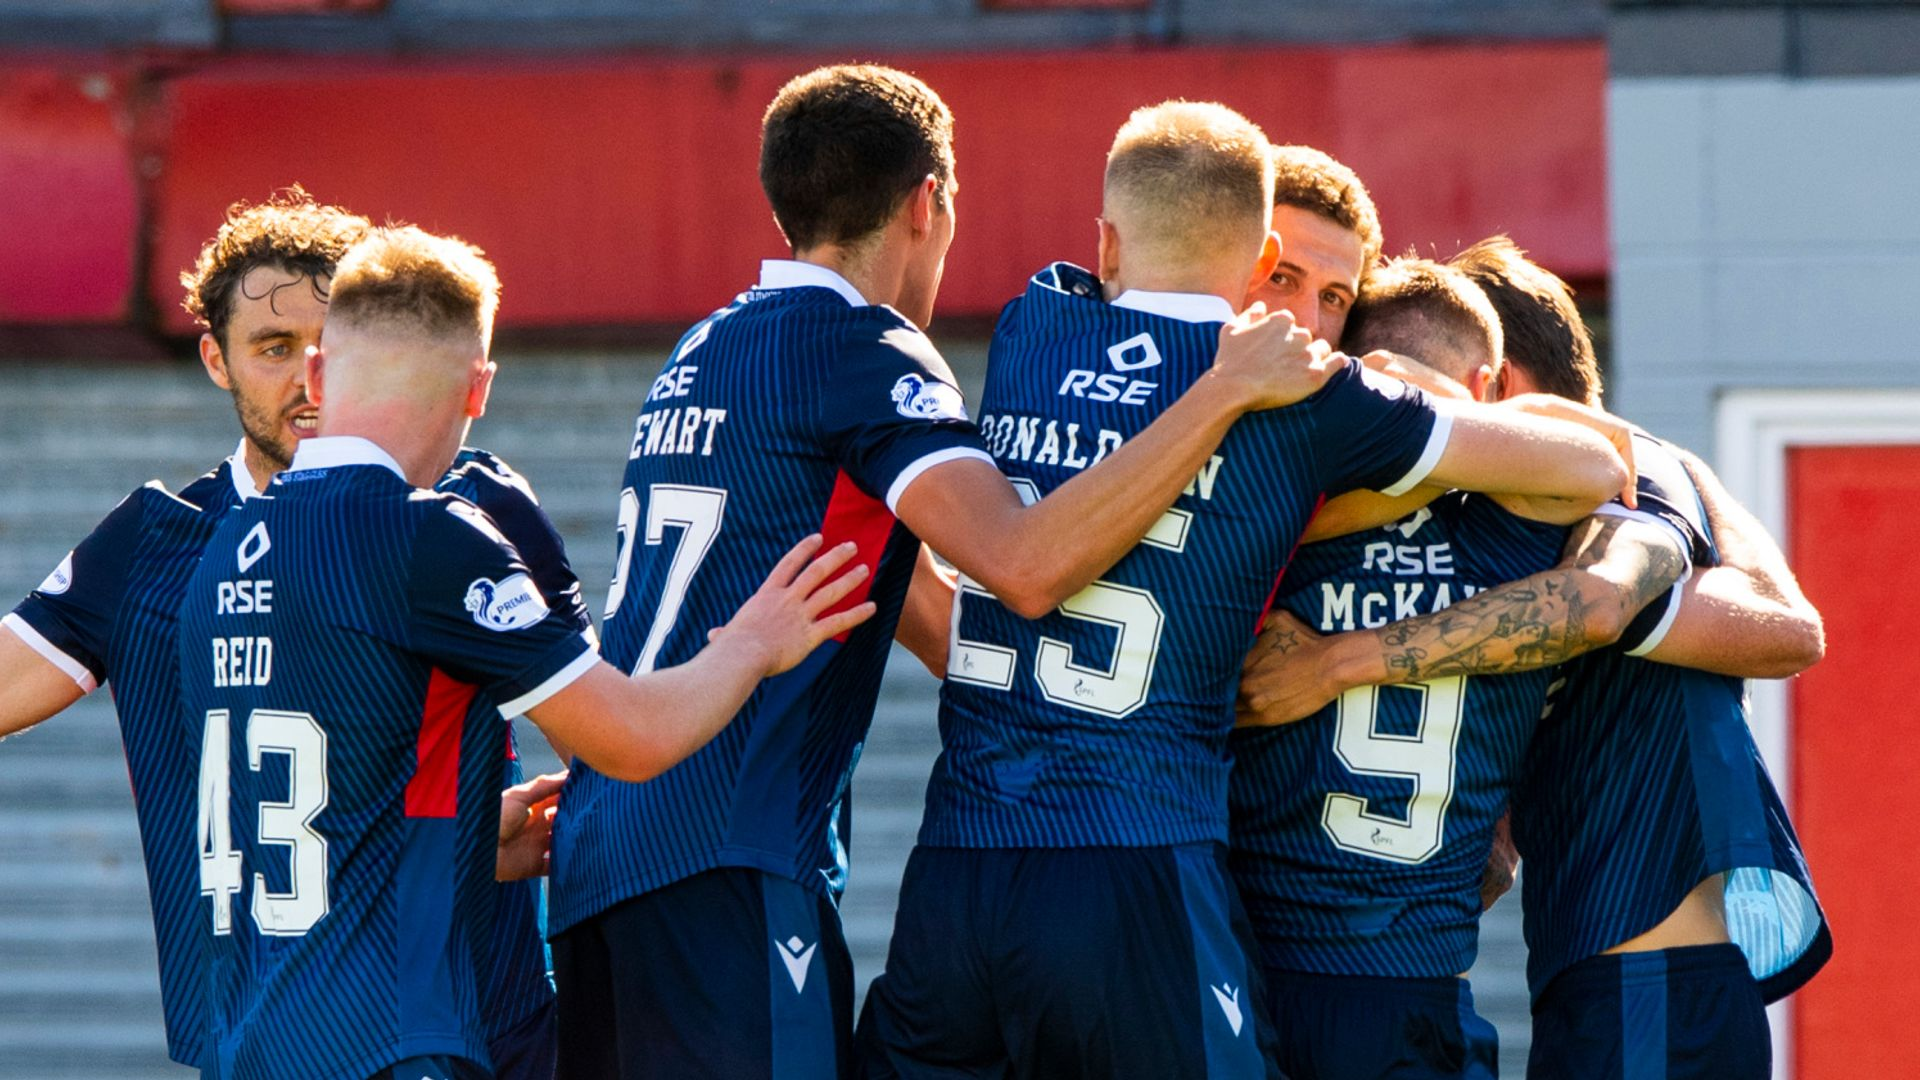 McKay maintains perfect Ross County start